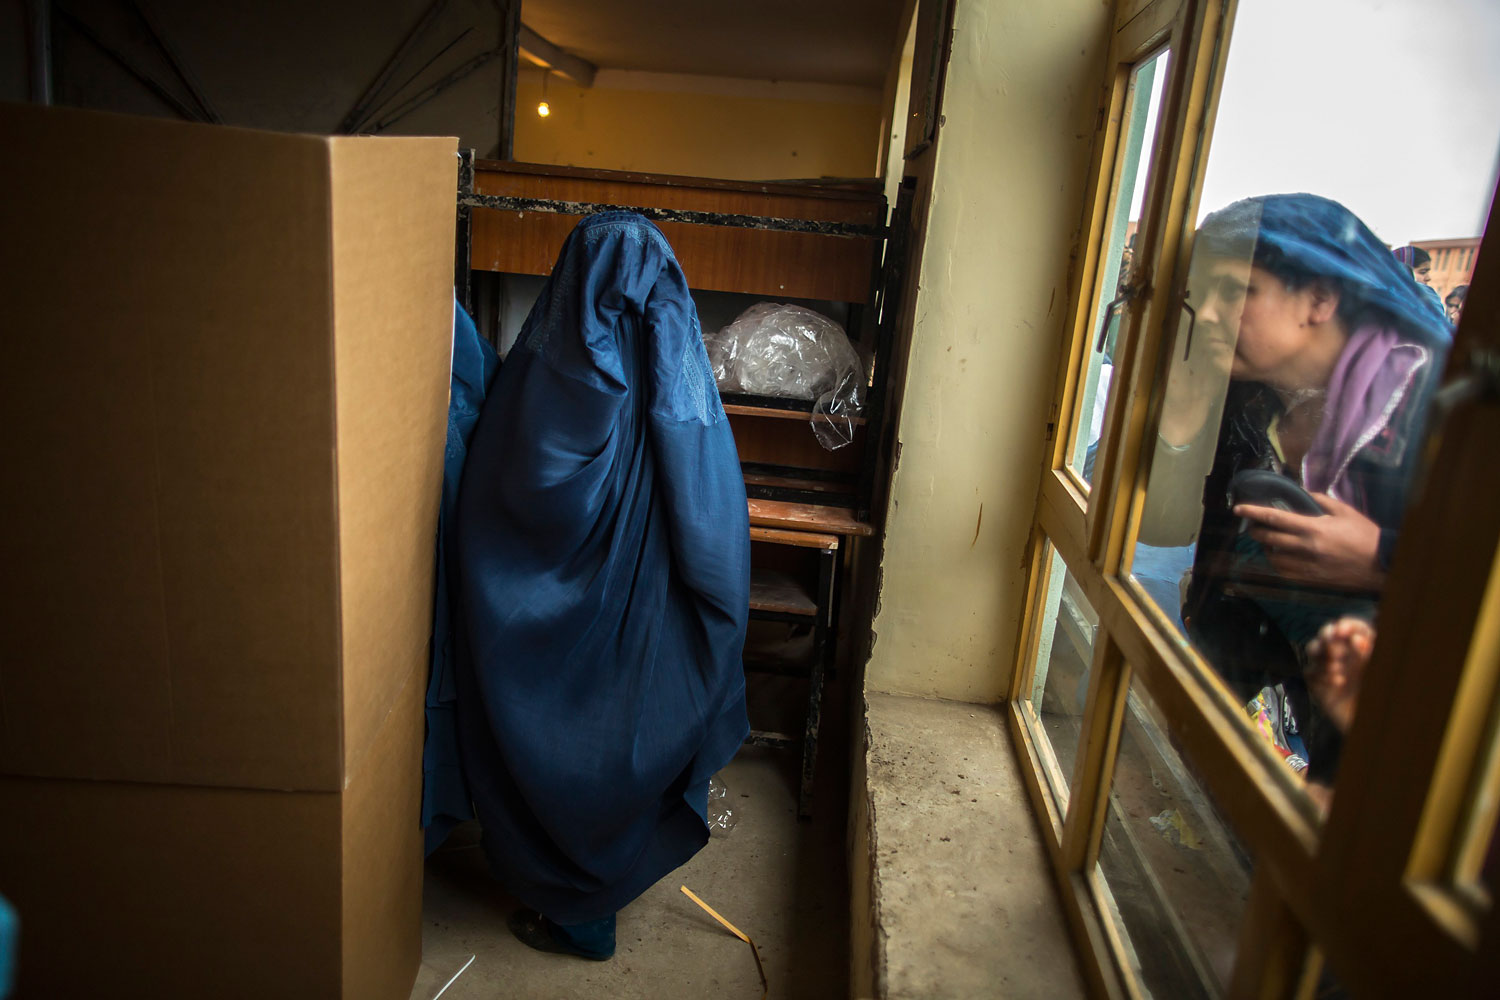 An Afghan woman looks through a window as another is about to cast her ballot.